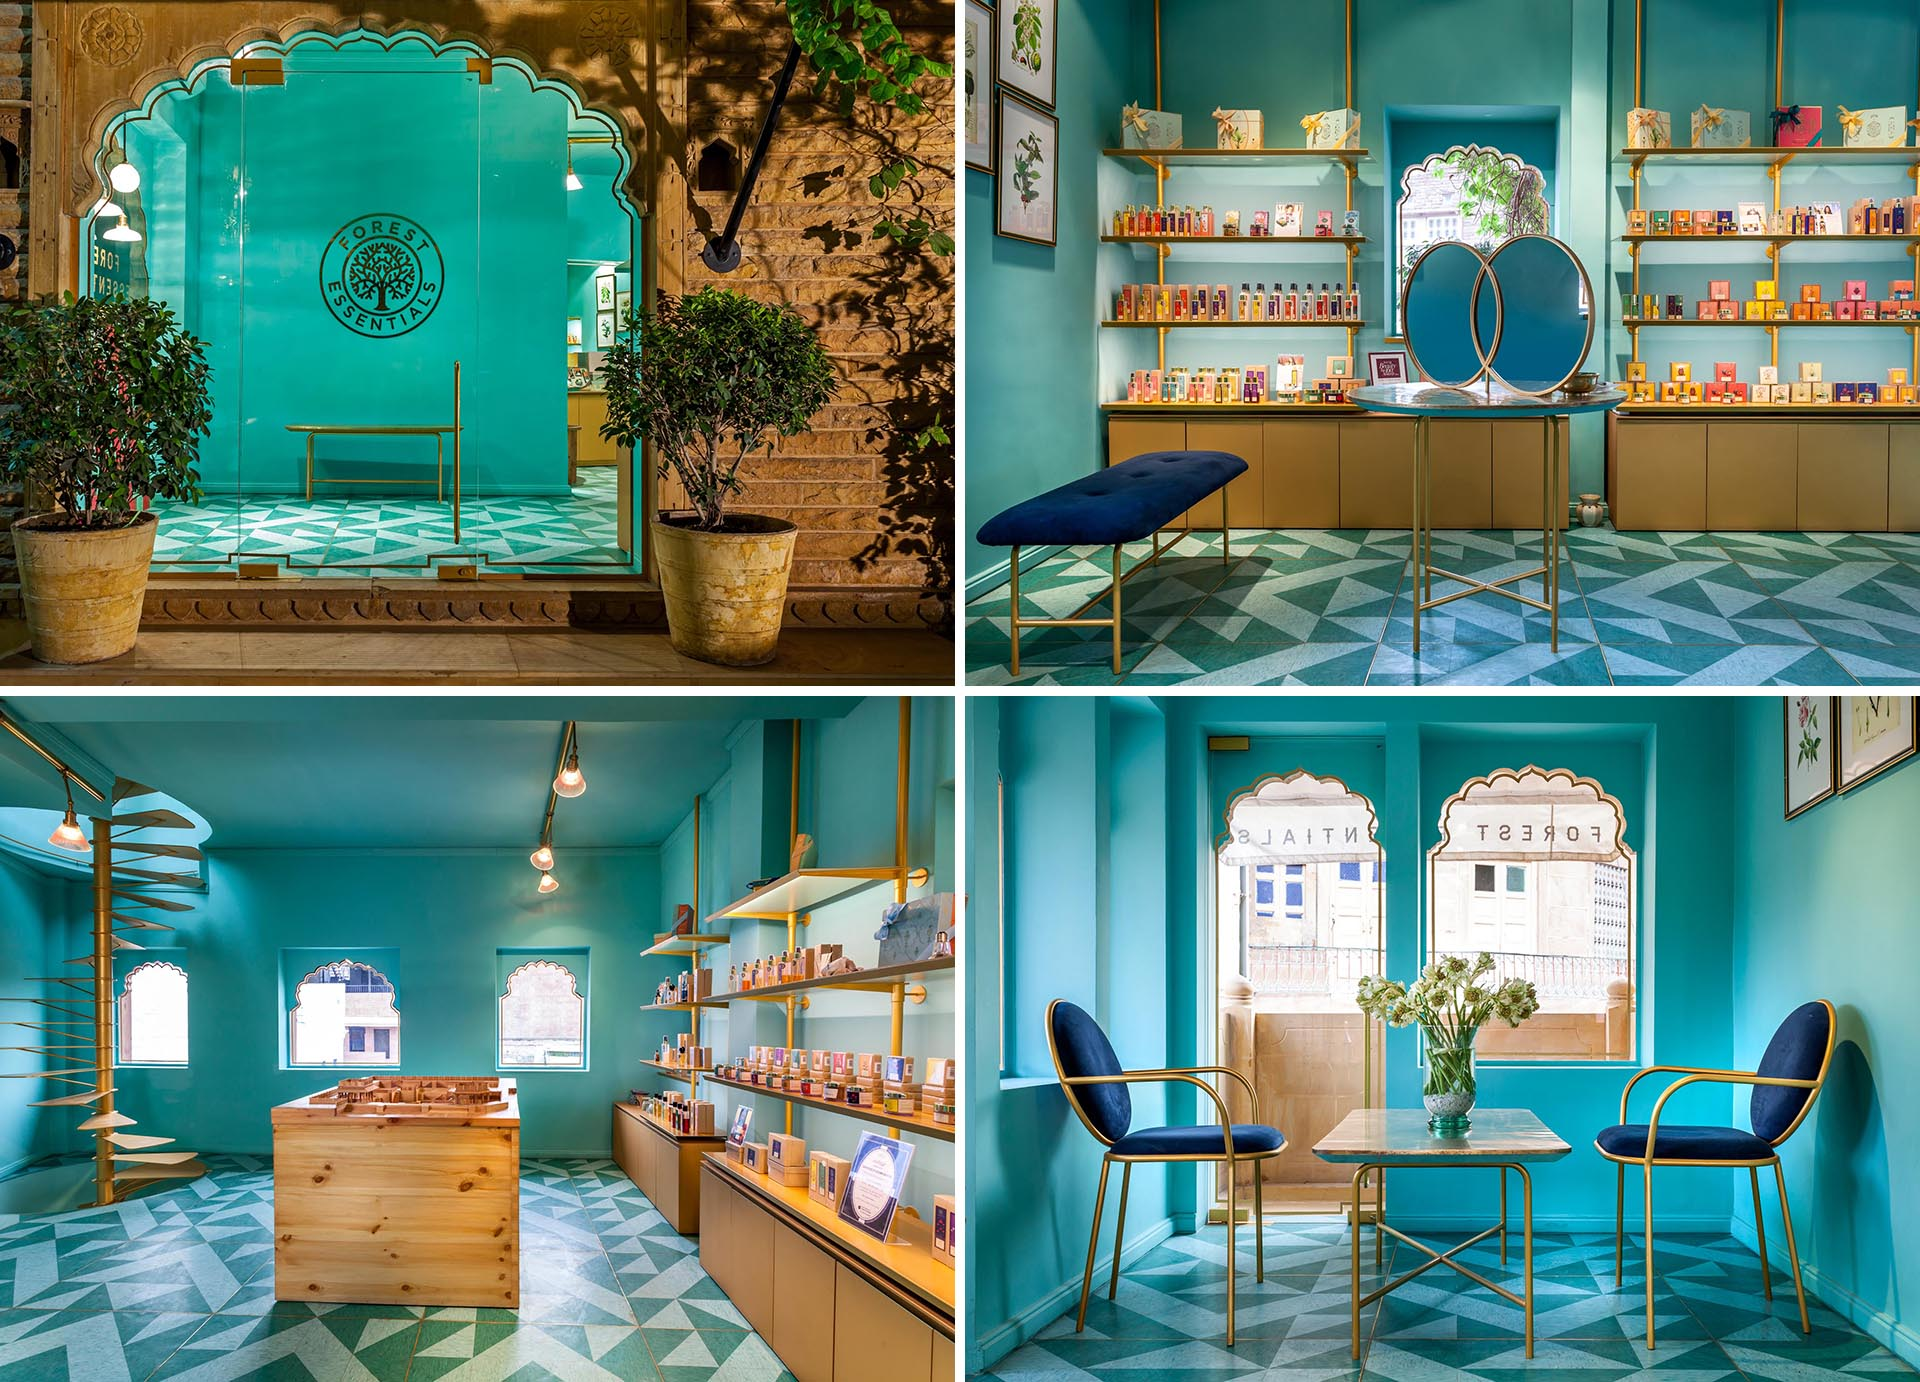 A modern retail store with teal blue walls.